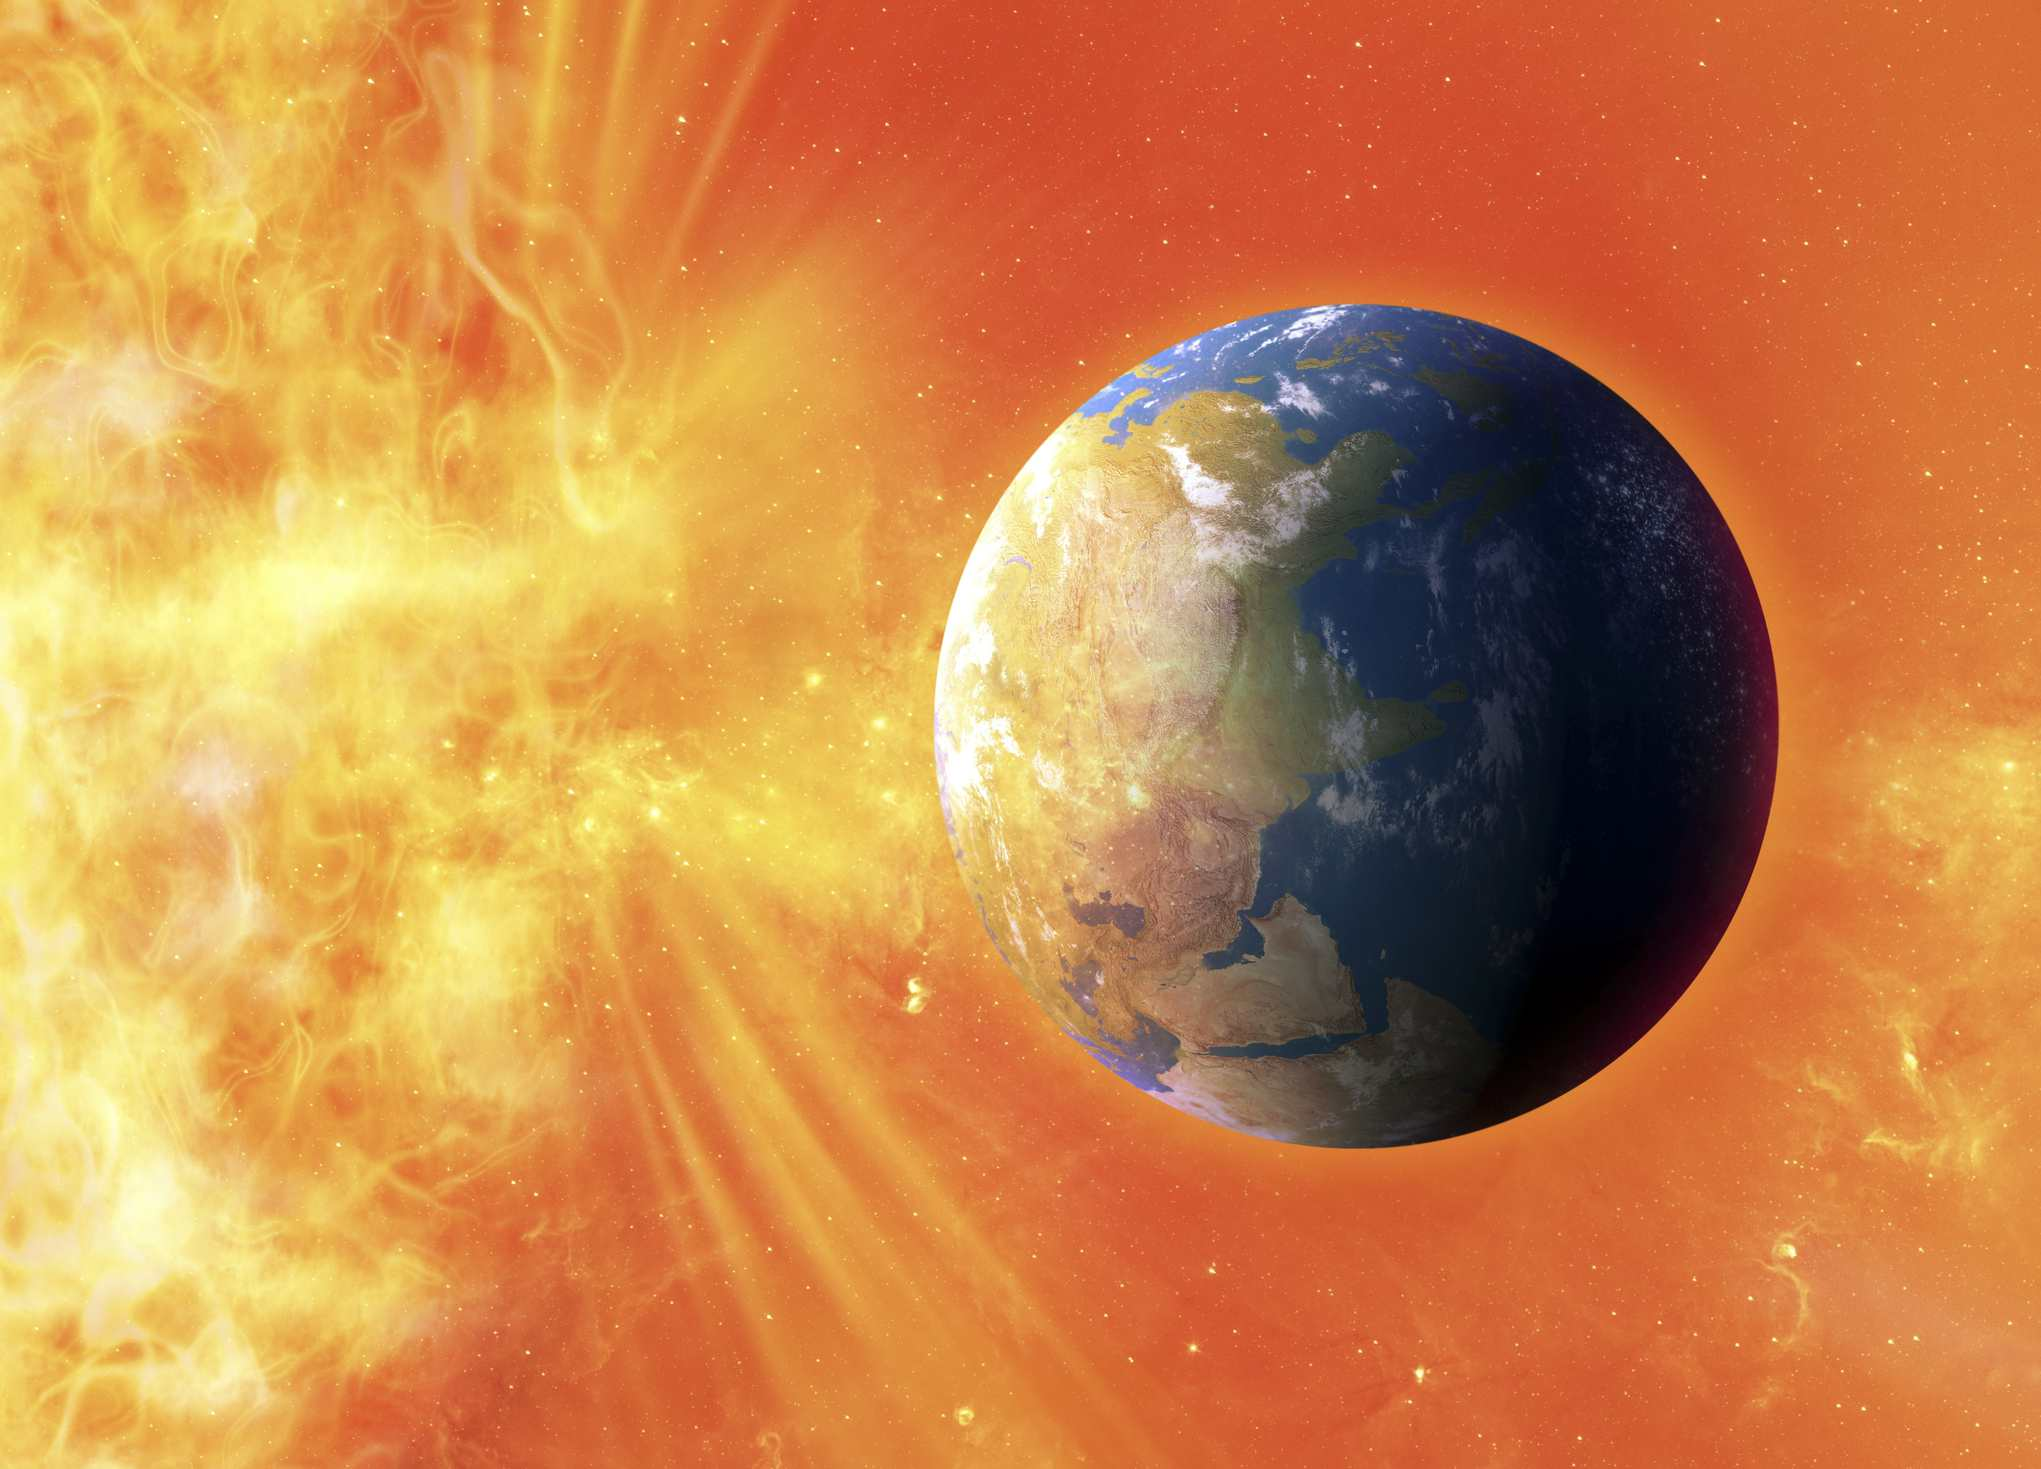 If a strong solar flare hit the Earth, the results could be devastating.